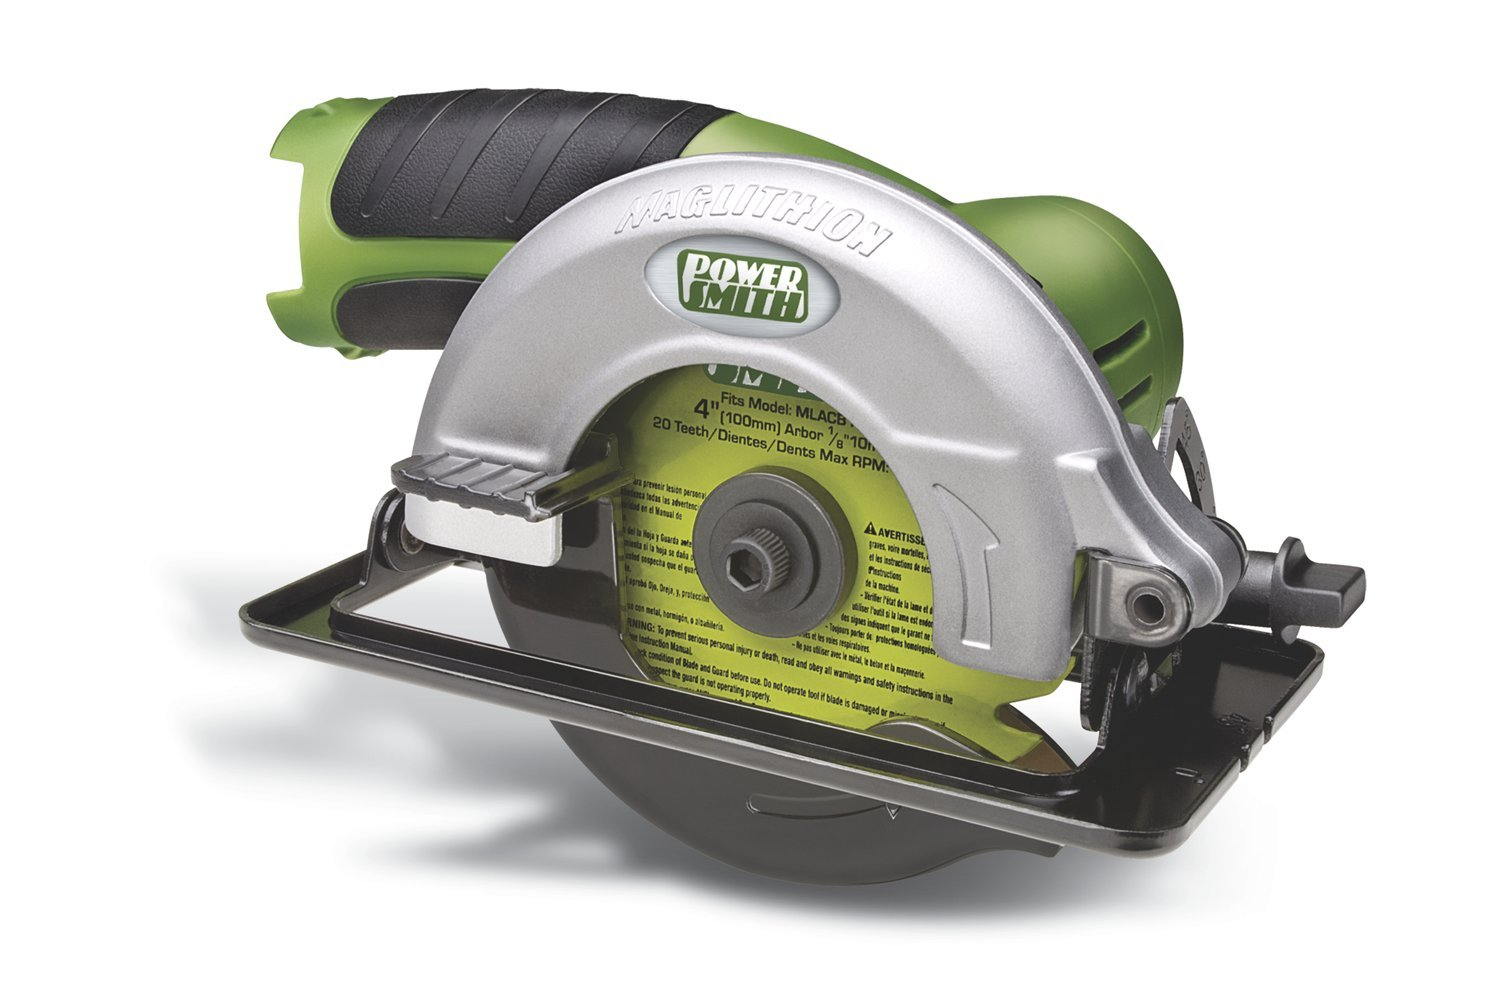 PowerSmith MLCS12C Mag 4-Inch 12-Volt Lithium Ion Compact Circular Saw